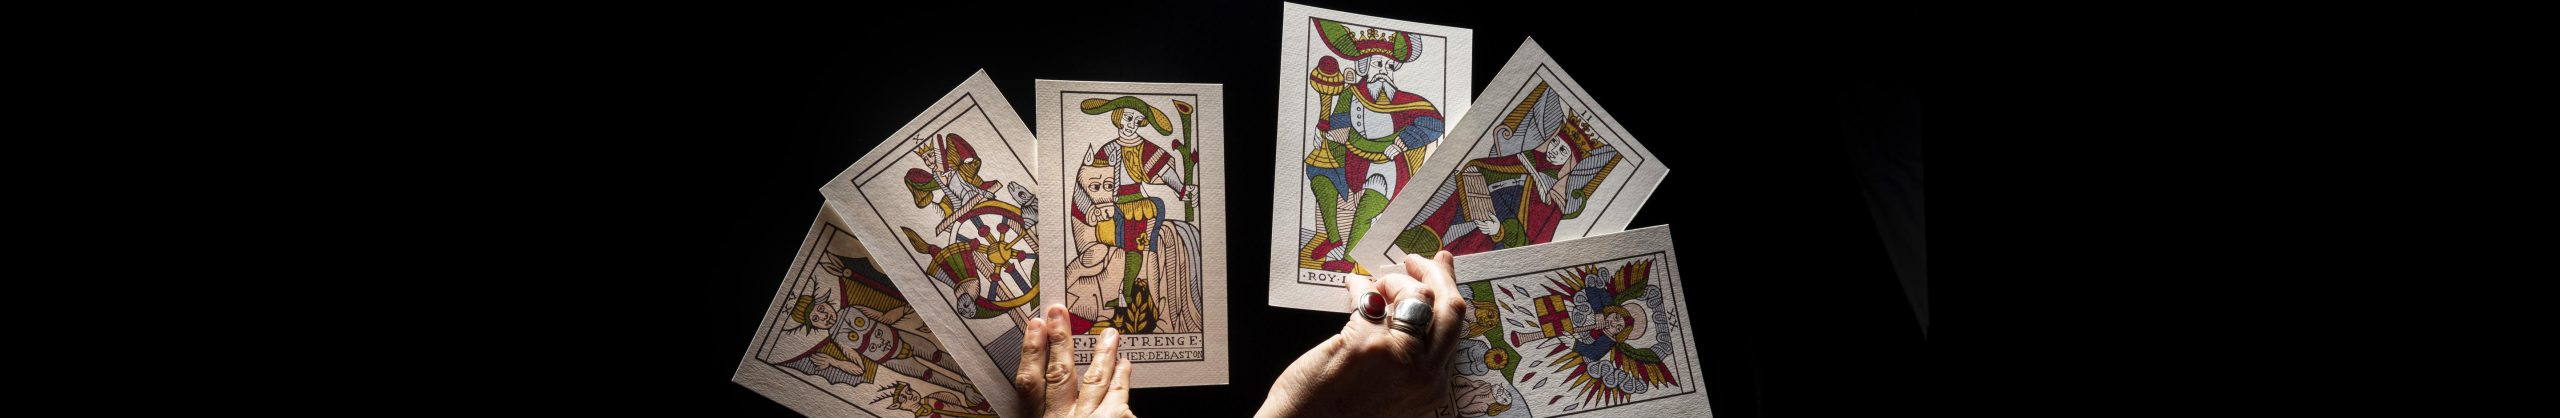 Six tarot cards held in two hands against dark background.